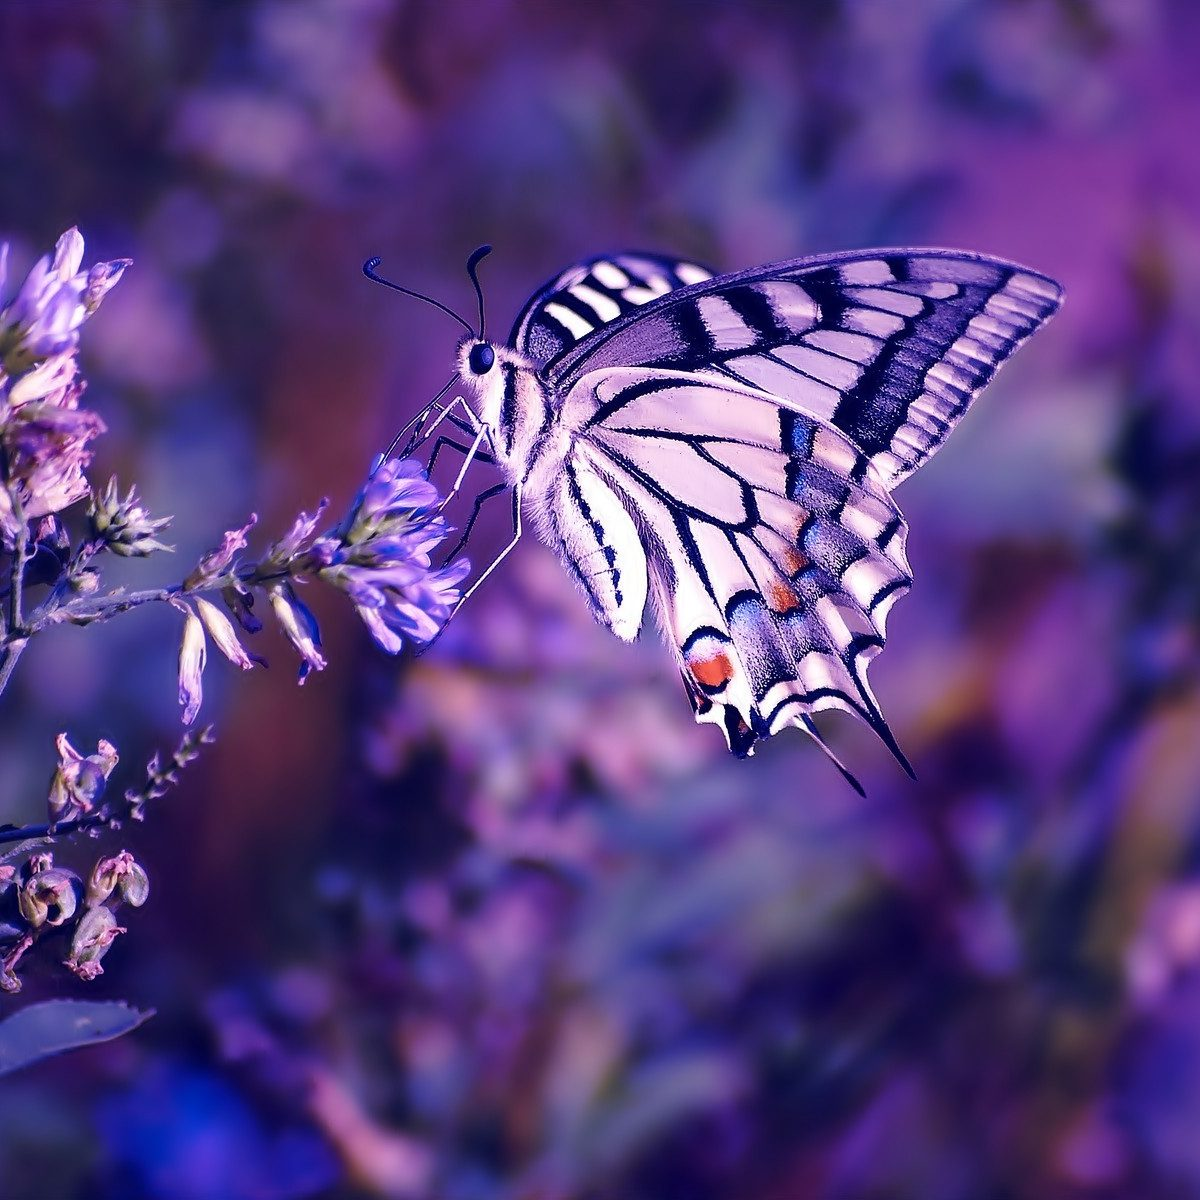 beautiful-wallpapers-purple-nature-wallpaper-wallpaper-35654